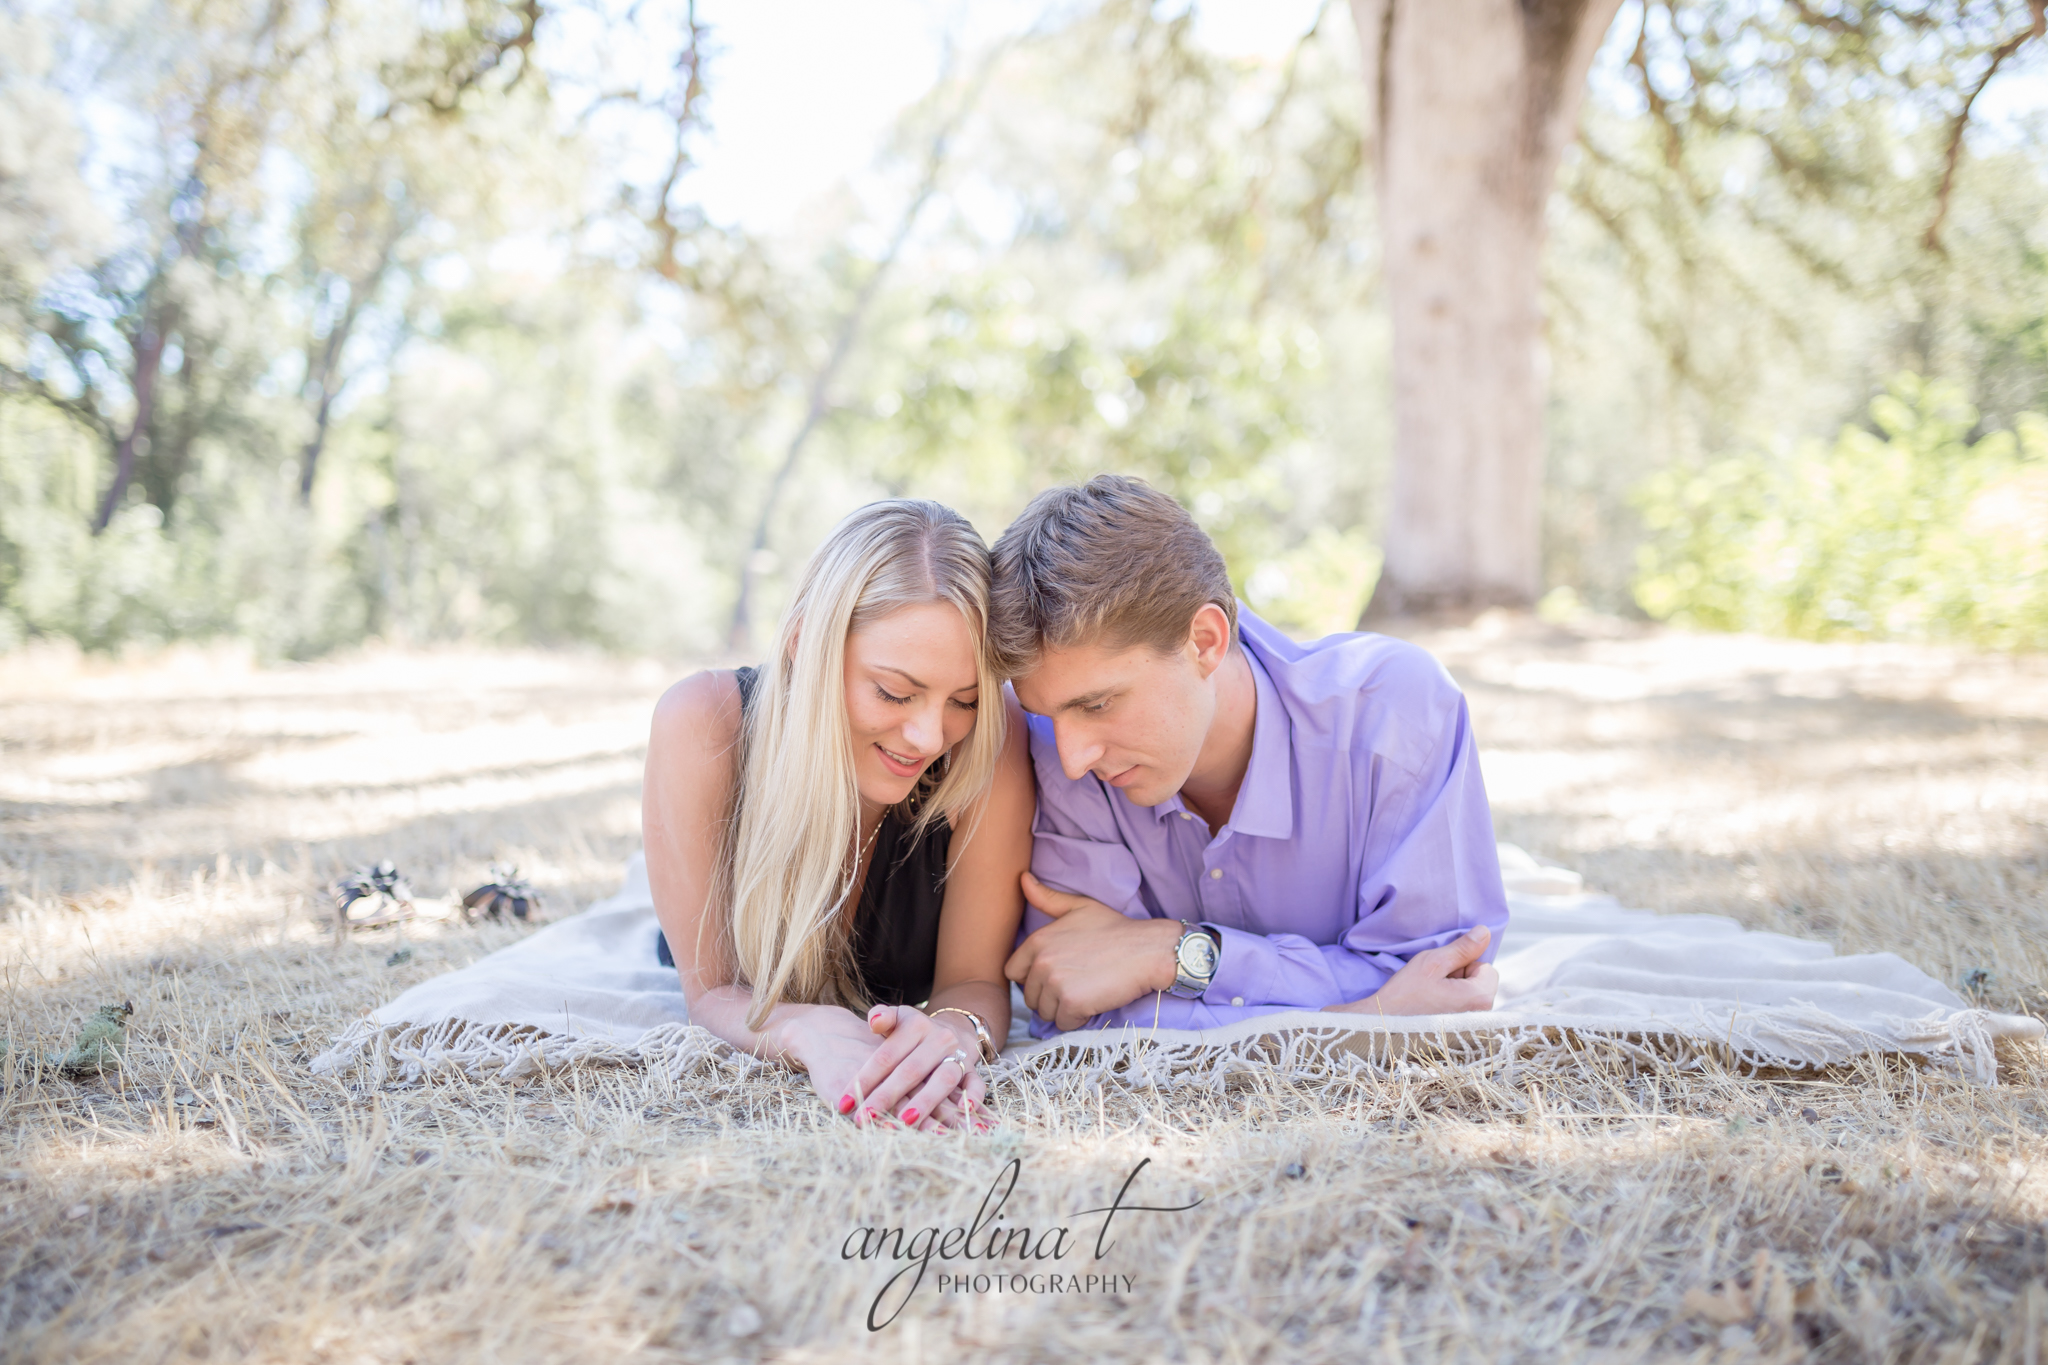 Best-Sacramento-Engagement-Photography-El-Dorado-Hills-04.jpg